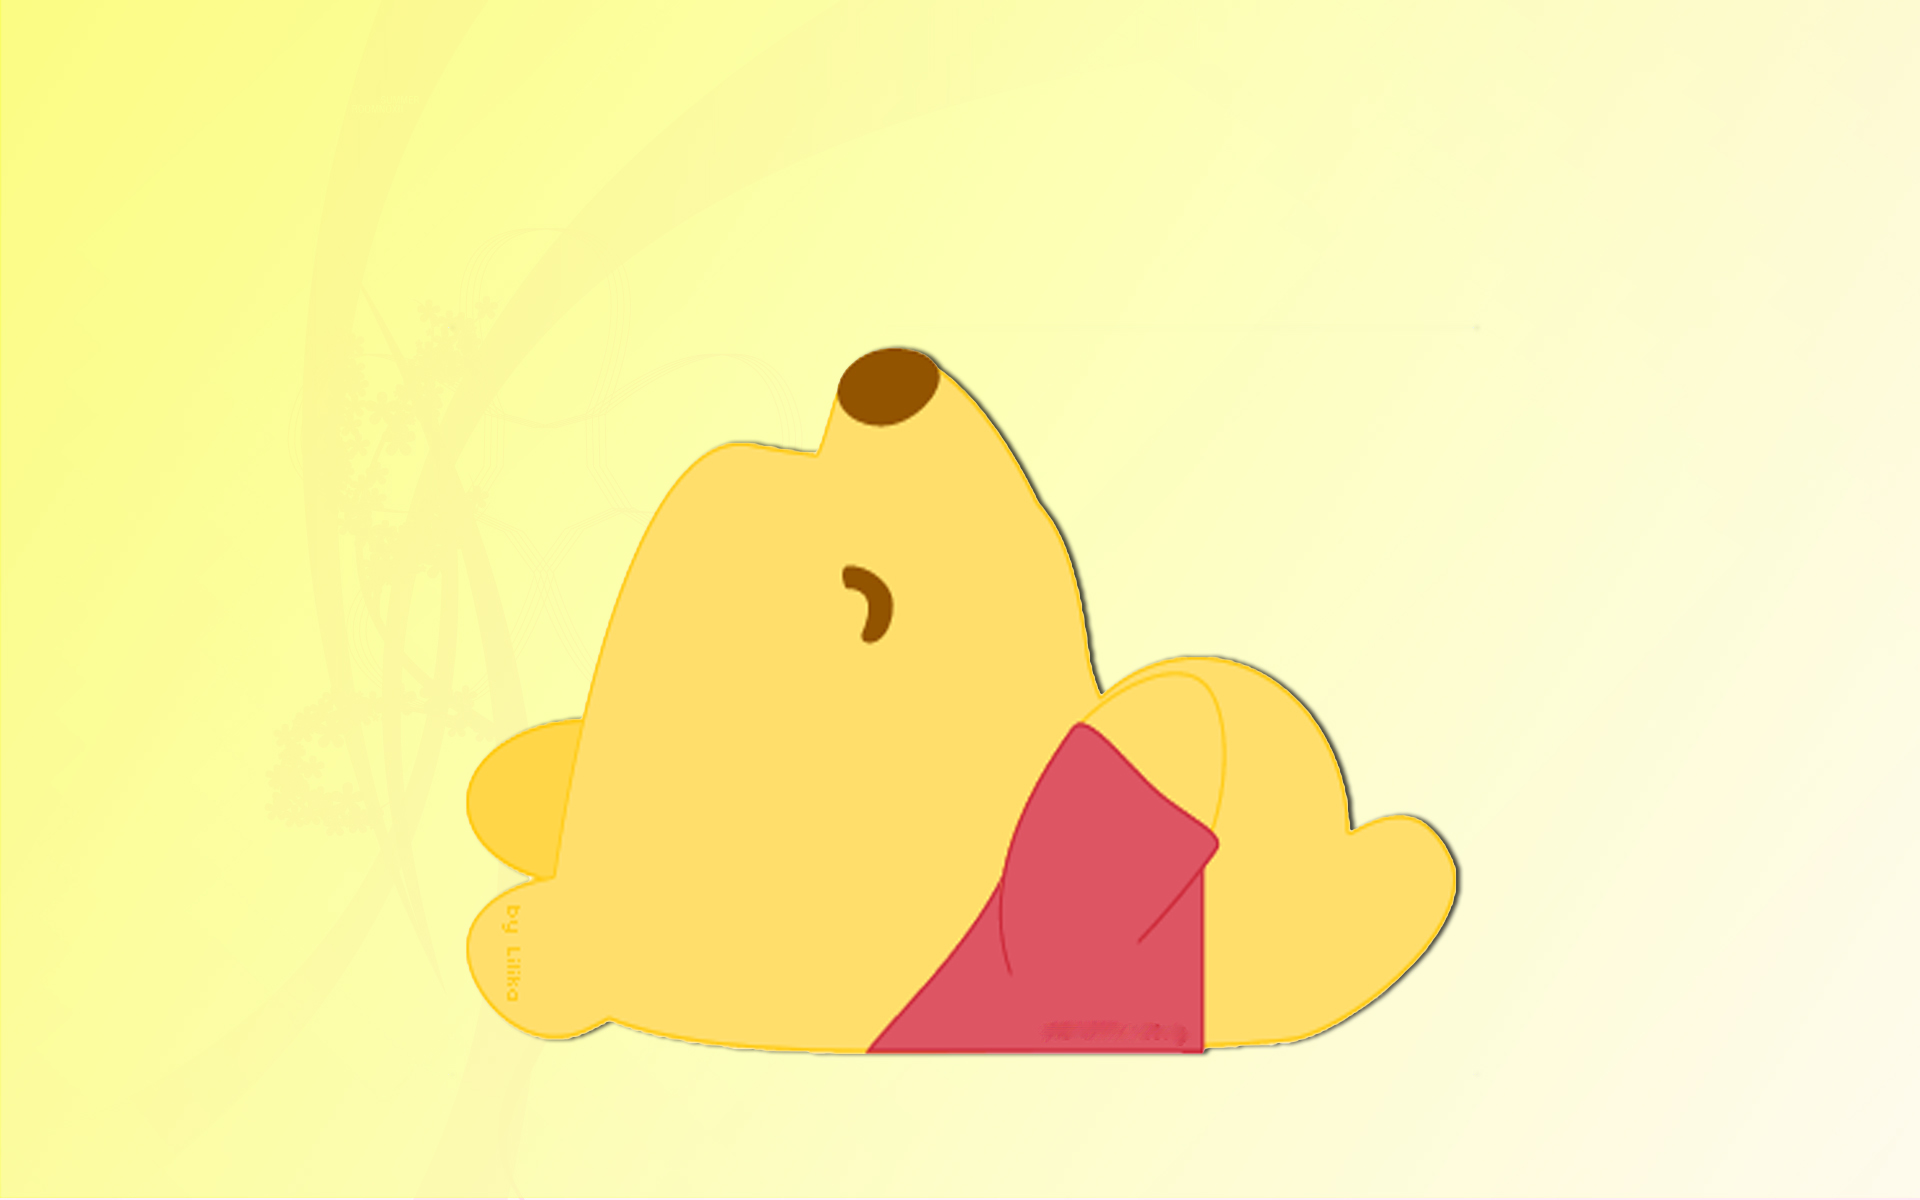 Wallpaper Android Winnie The Pooh